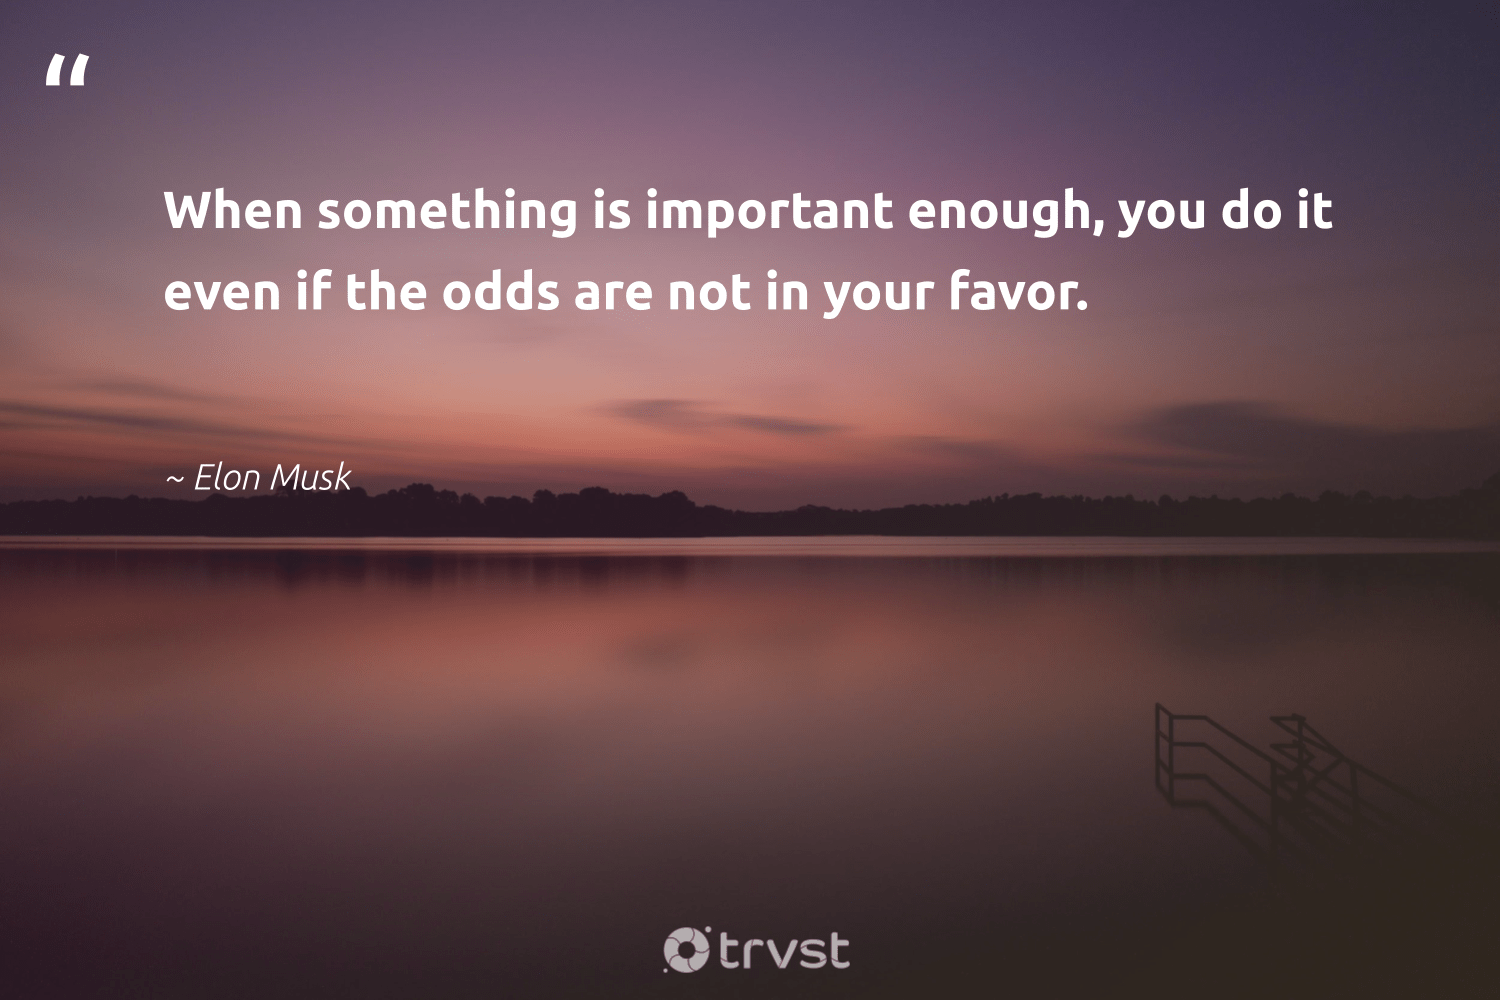 """""""When something is important enough, you do it even if the odds are not in your favor.""""  - Elon Musk #trvst #quotes #begreat #changetheworld #nevergiveup #planetearthfirst #softskills #ecoconscious #futureofwork #socialimpact #thinkgreen #dosomething"""